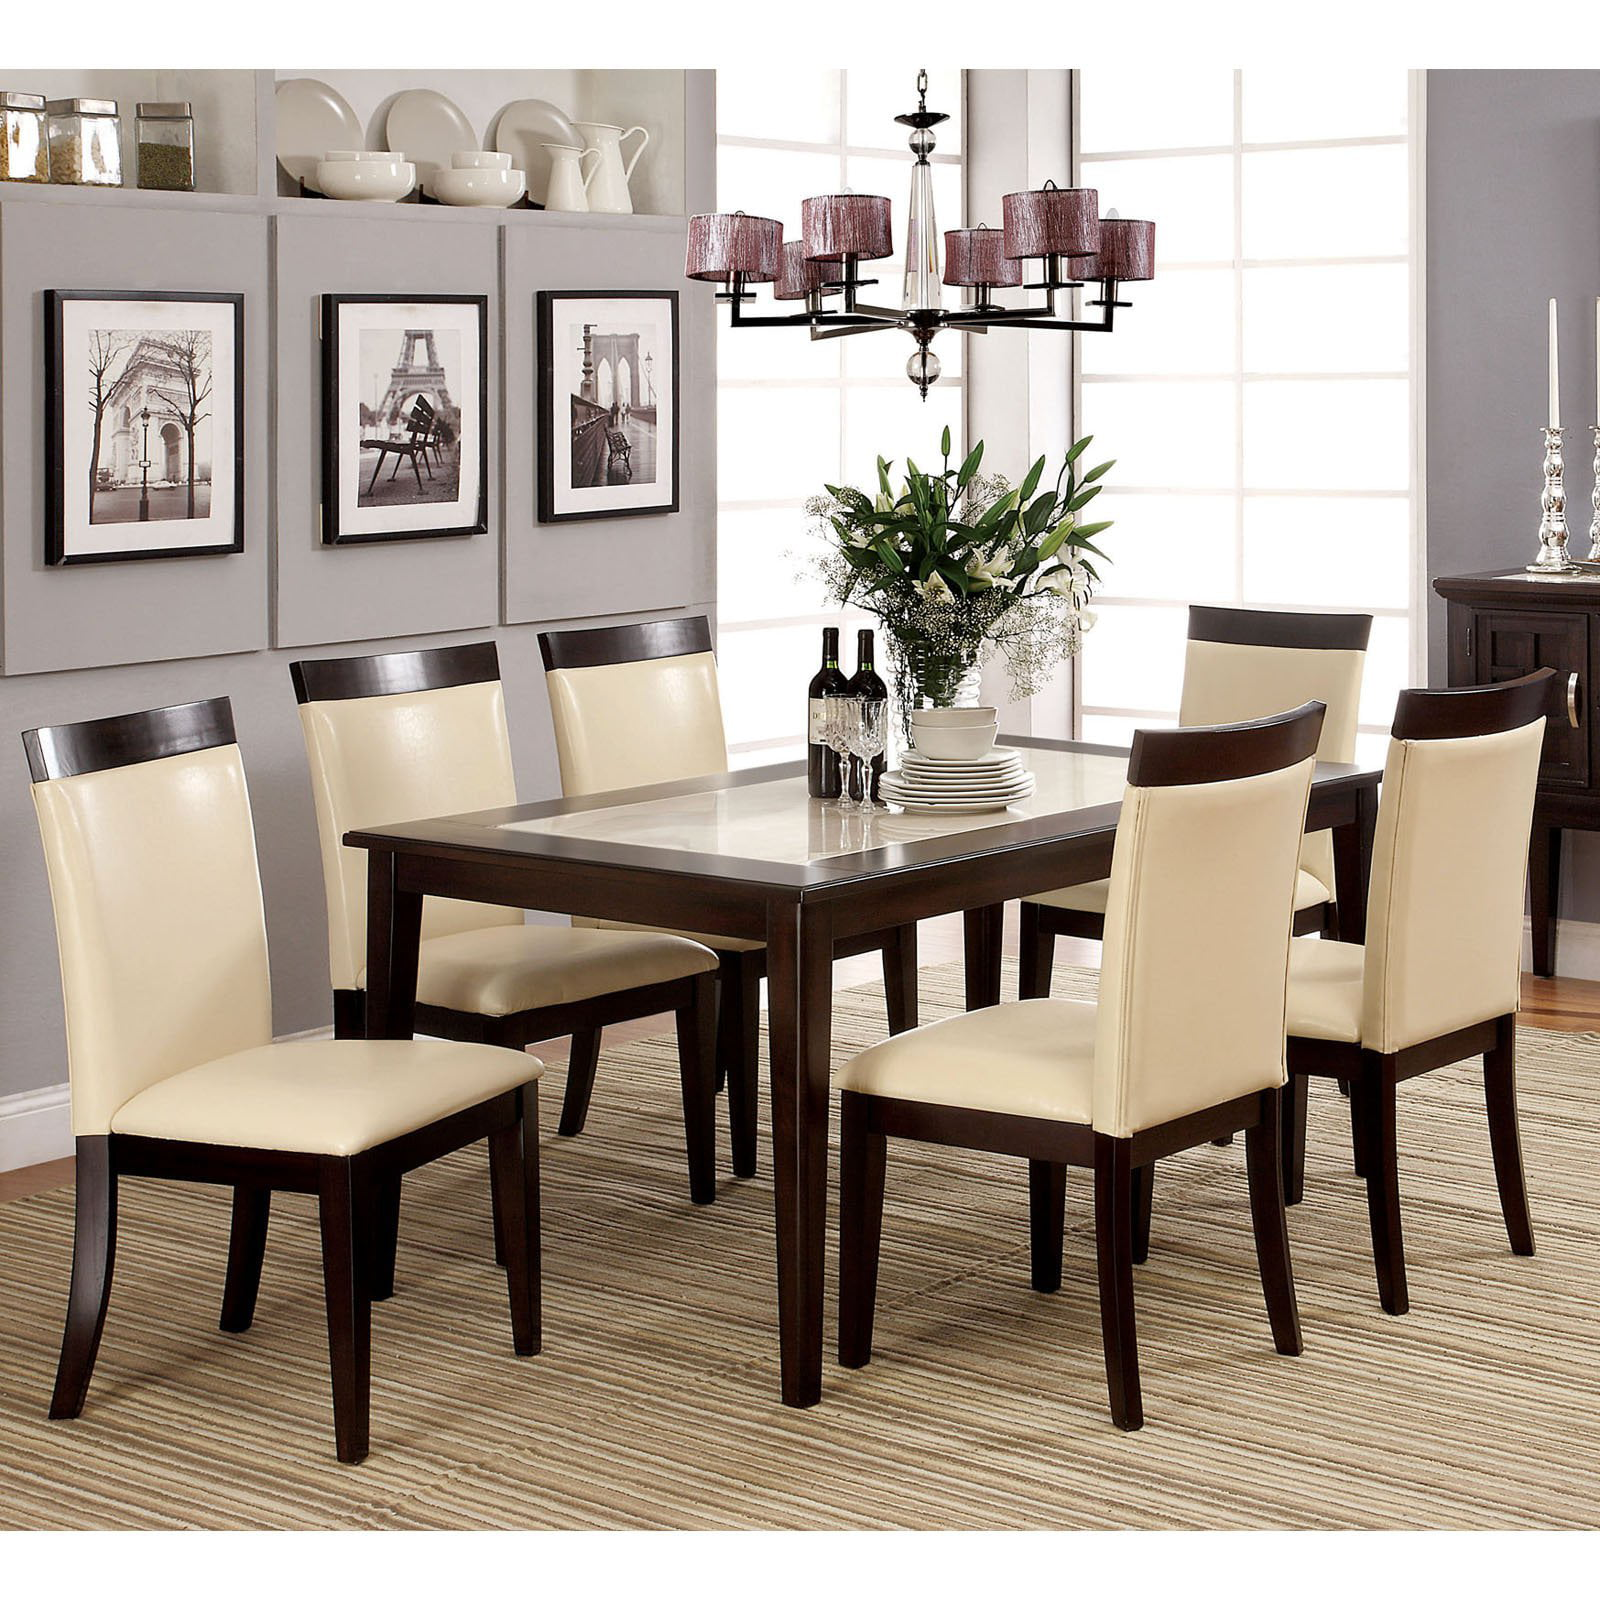 Awesome Mainstays 5 Piece Faux Marble Top Dining Set   Walmart.com Amazing Pictures